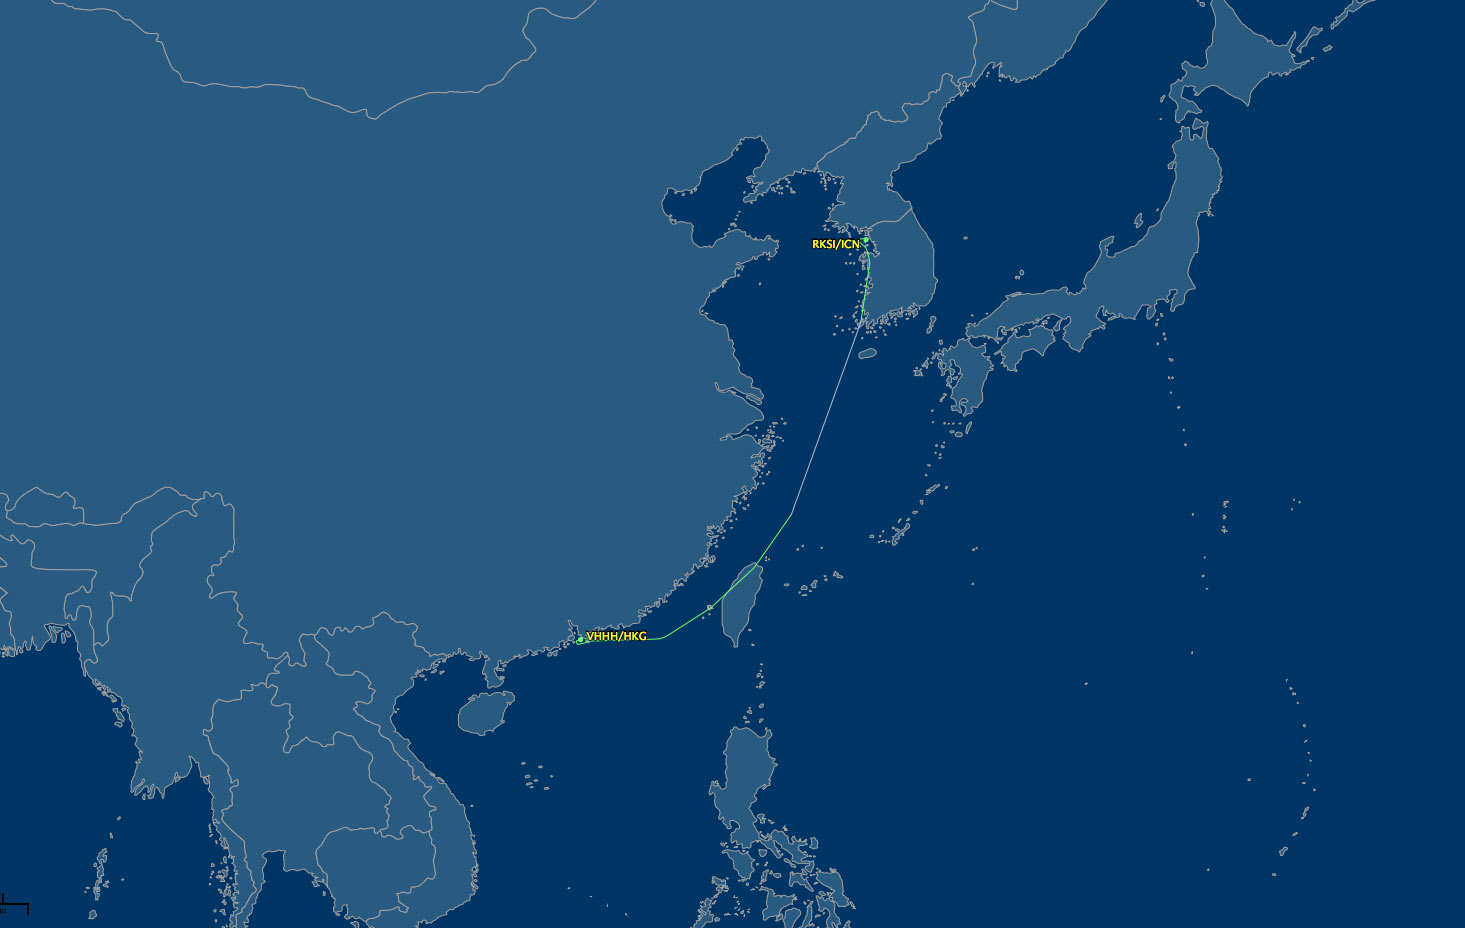 ICN to HKG air route map